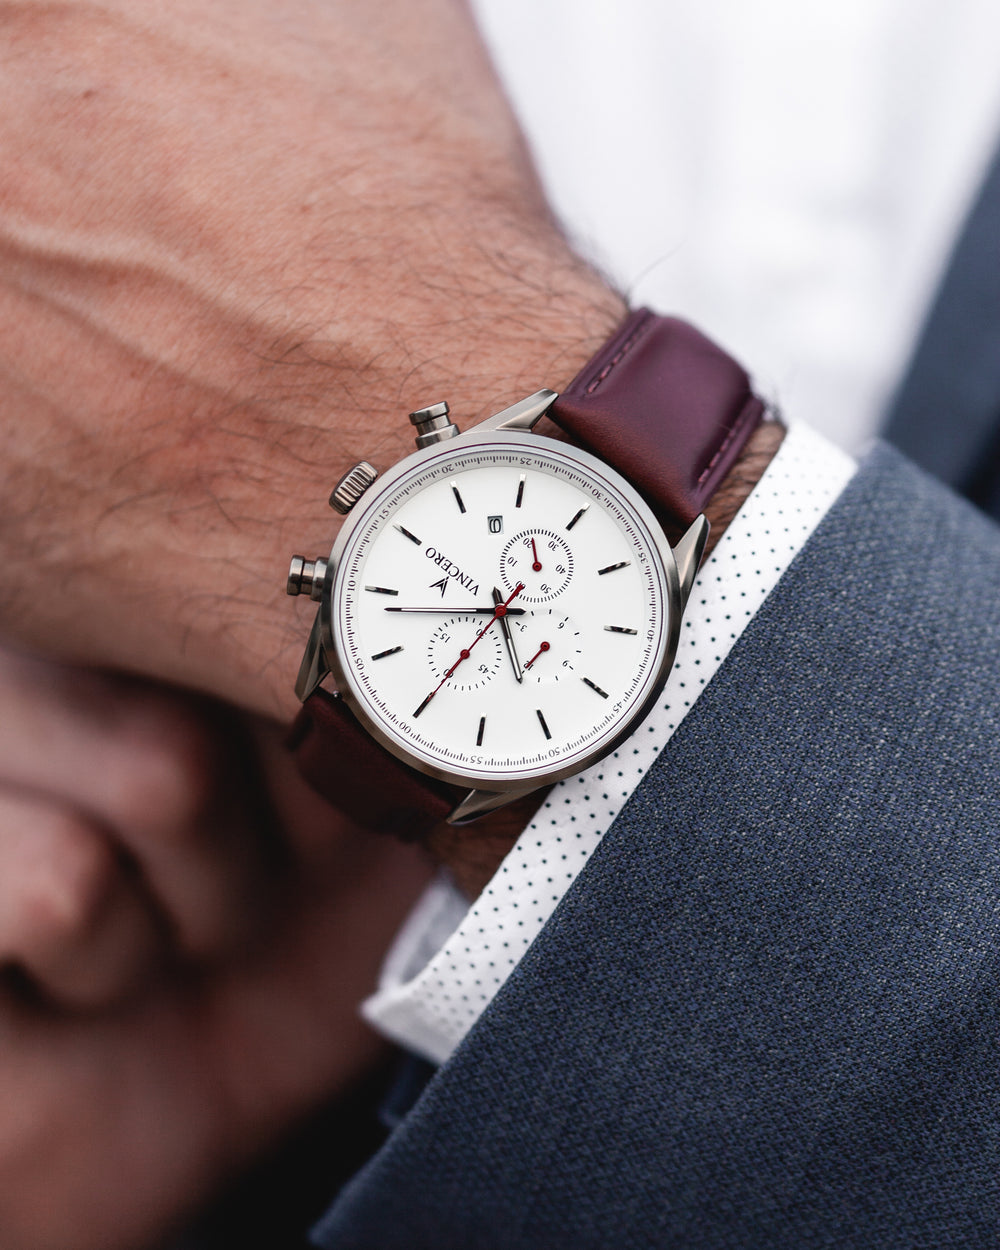 The Chrono S - Nickel/Oxblood